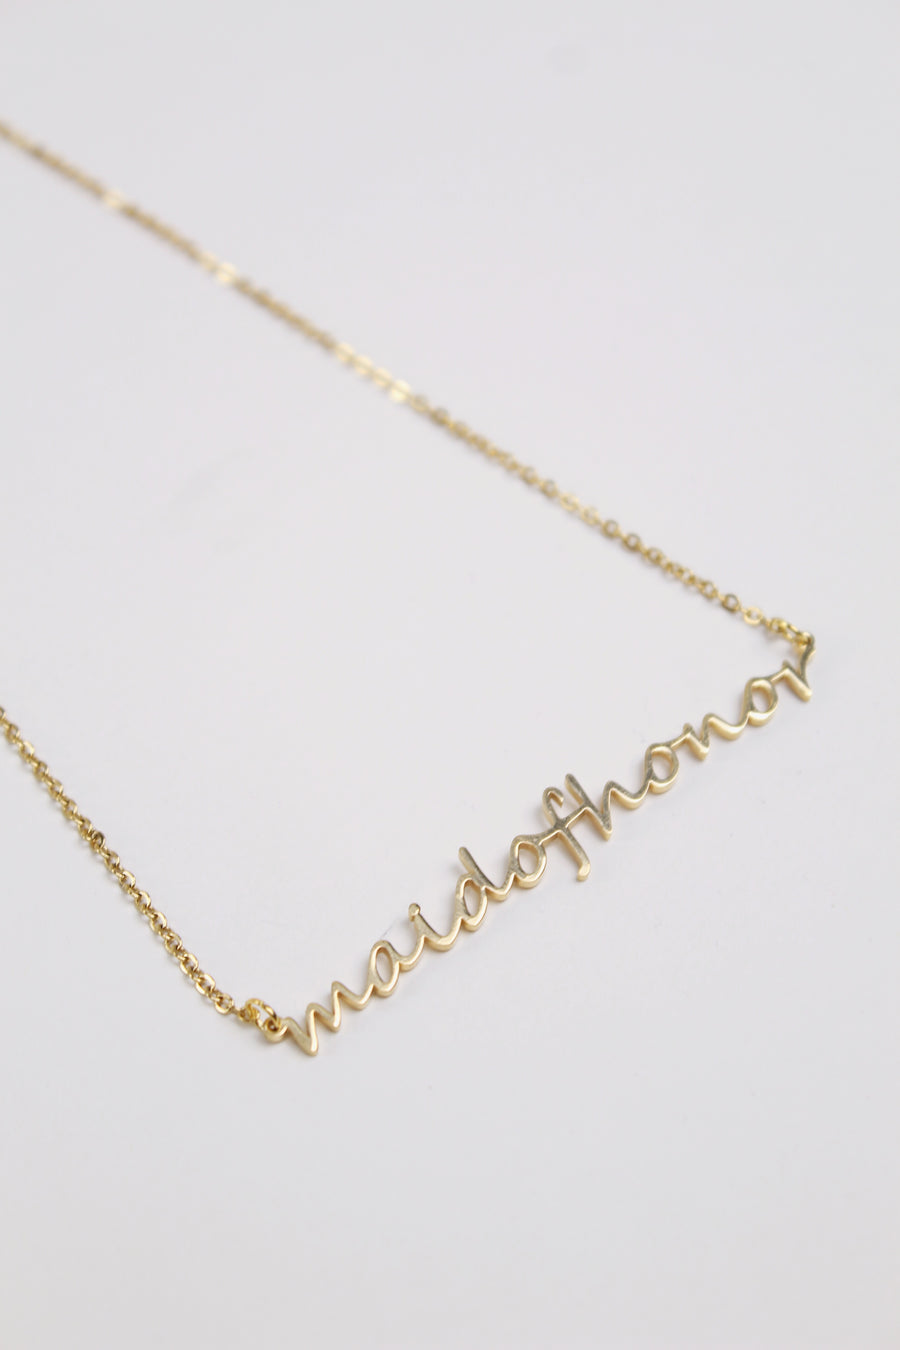 Maid of Honor Necklace - The Beach Bride by Chic Parisien, a destination for beach weddings, bachelorettes and honeymoons